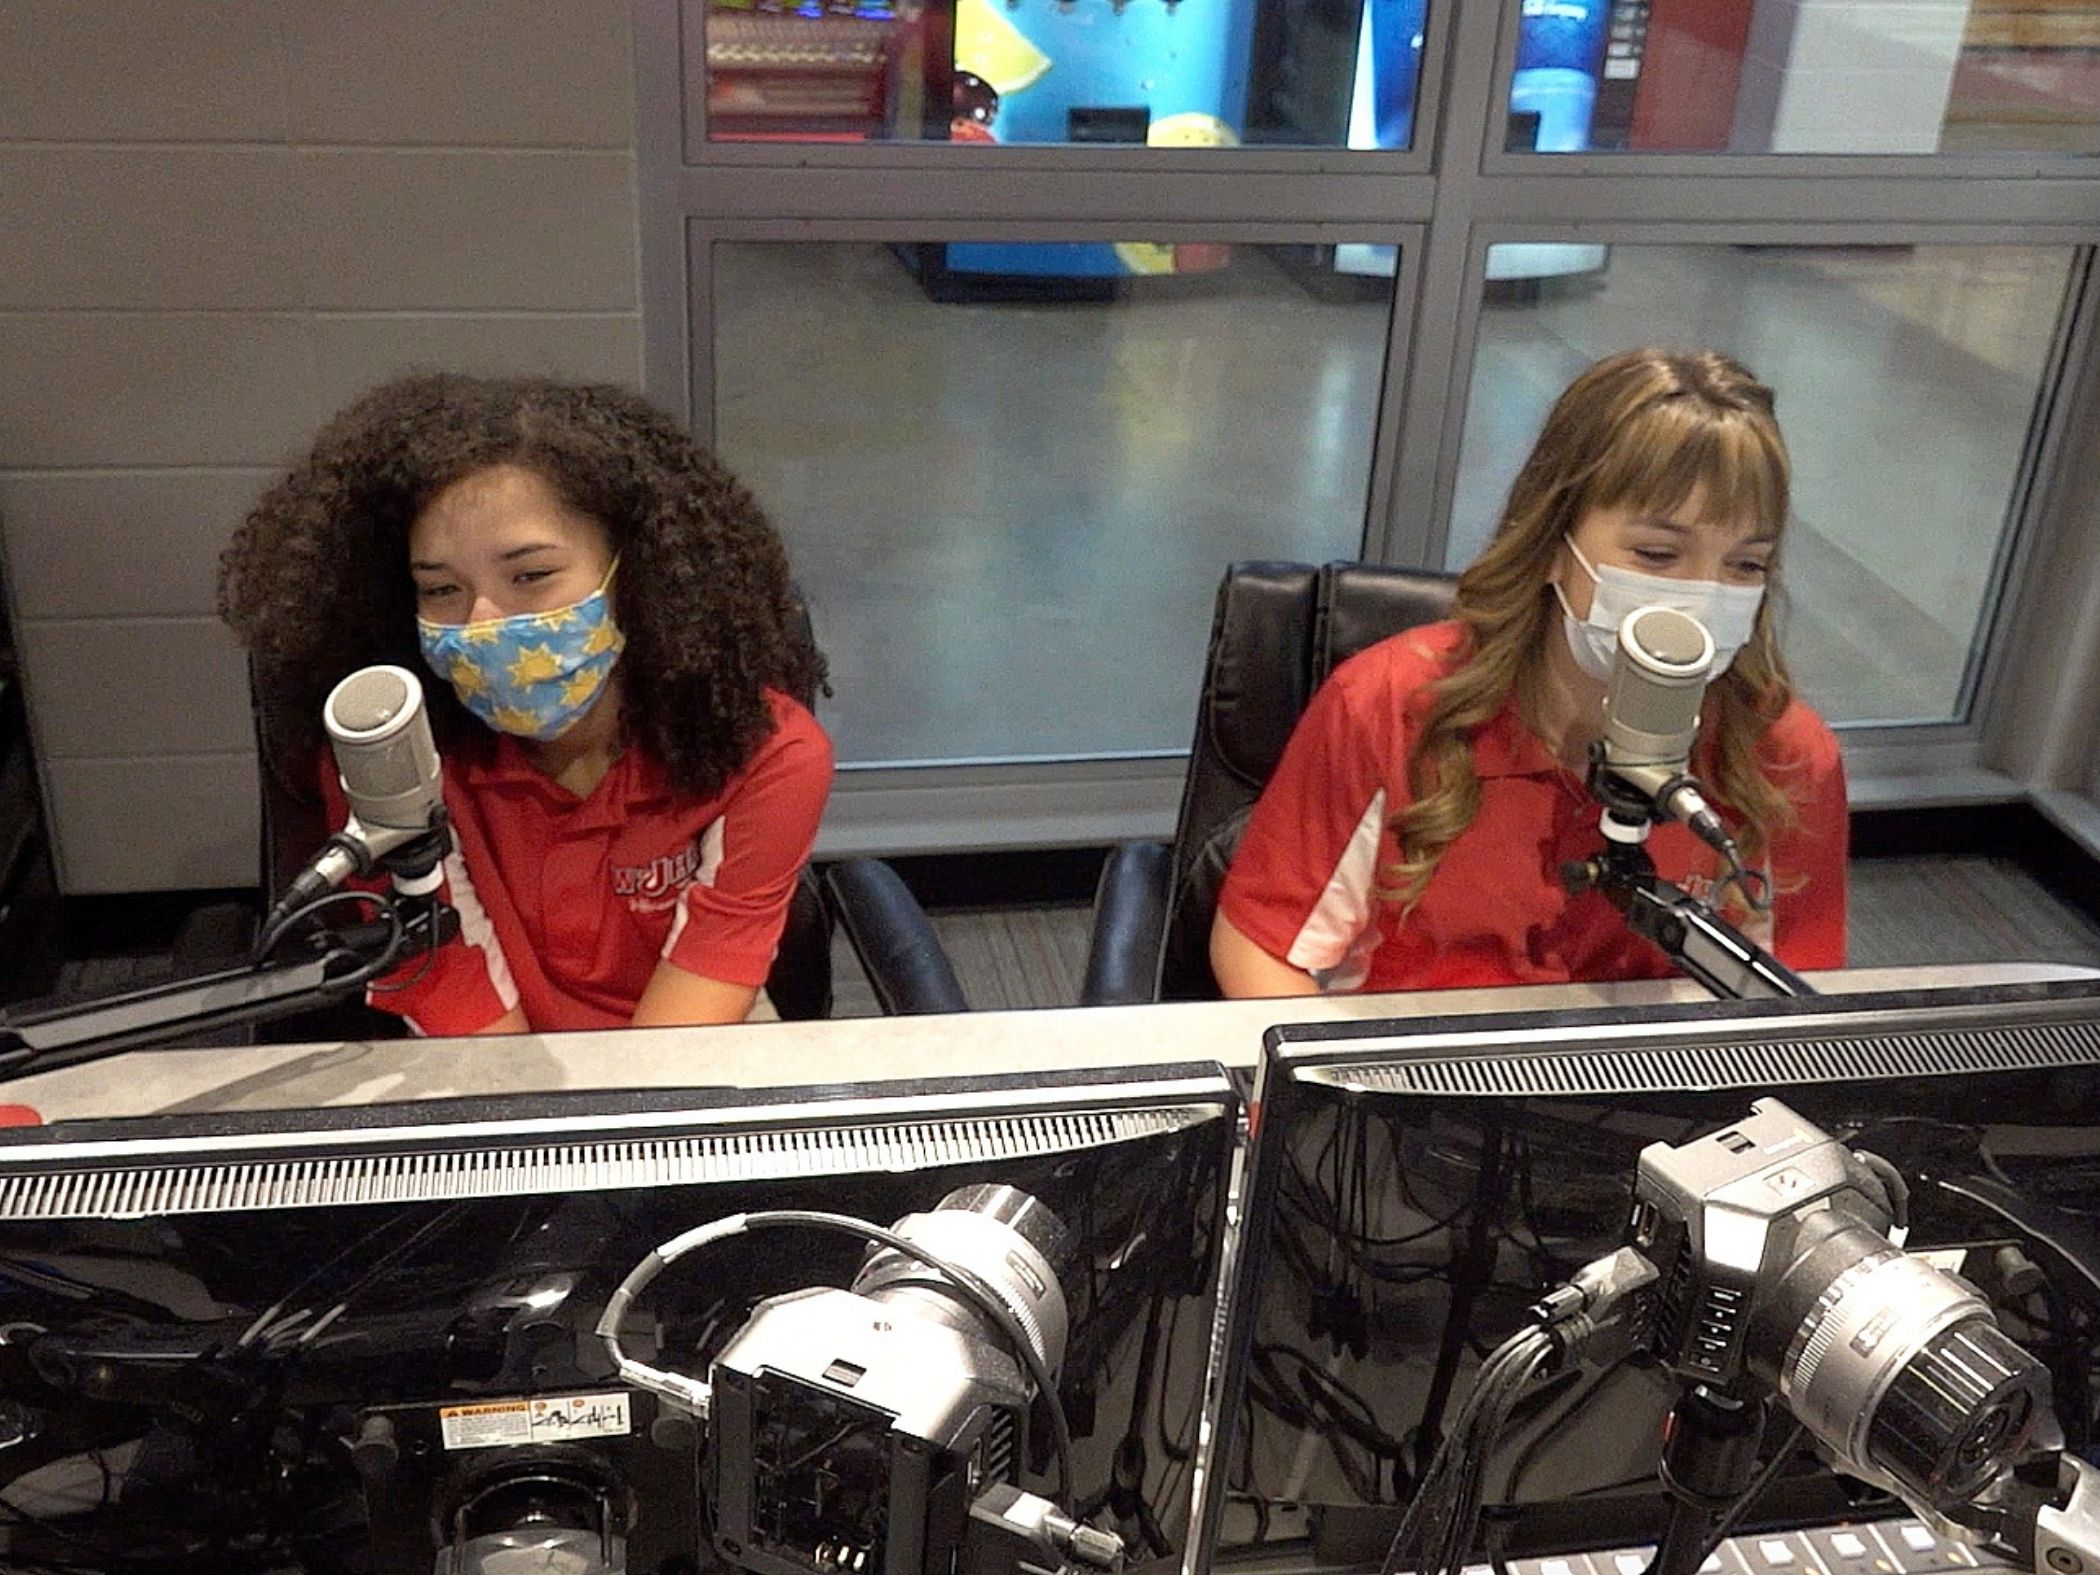 Two girls broadcasting from the radio and TV station